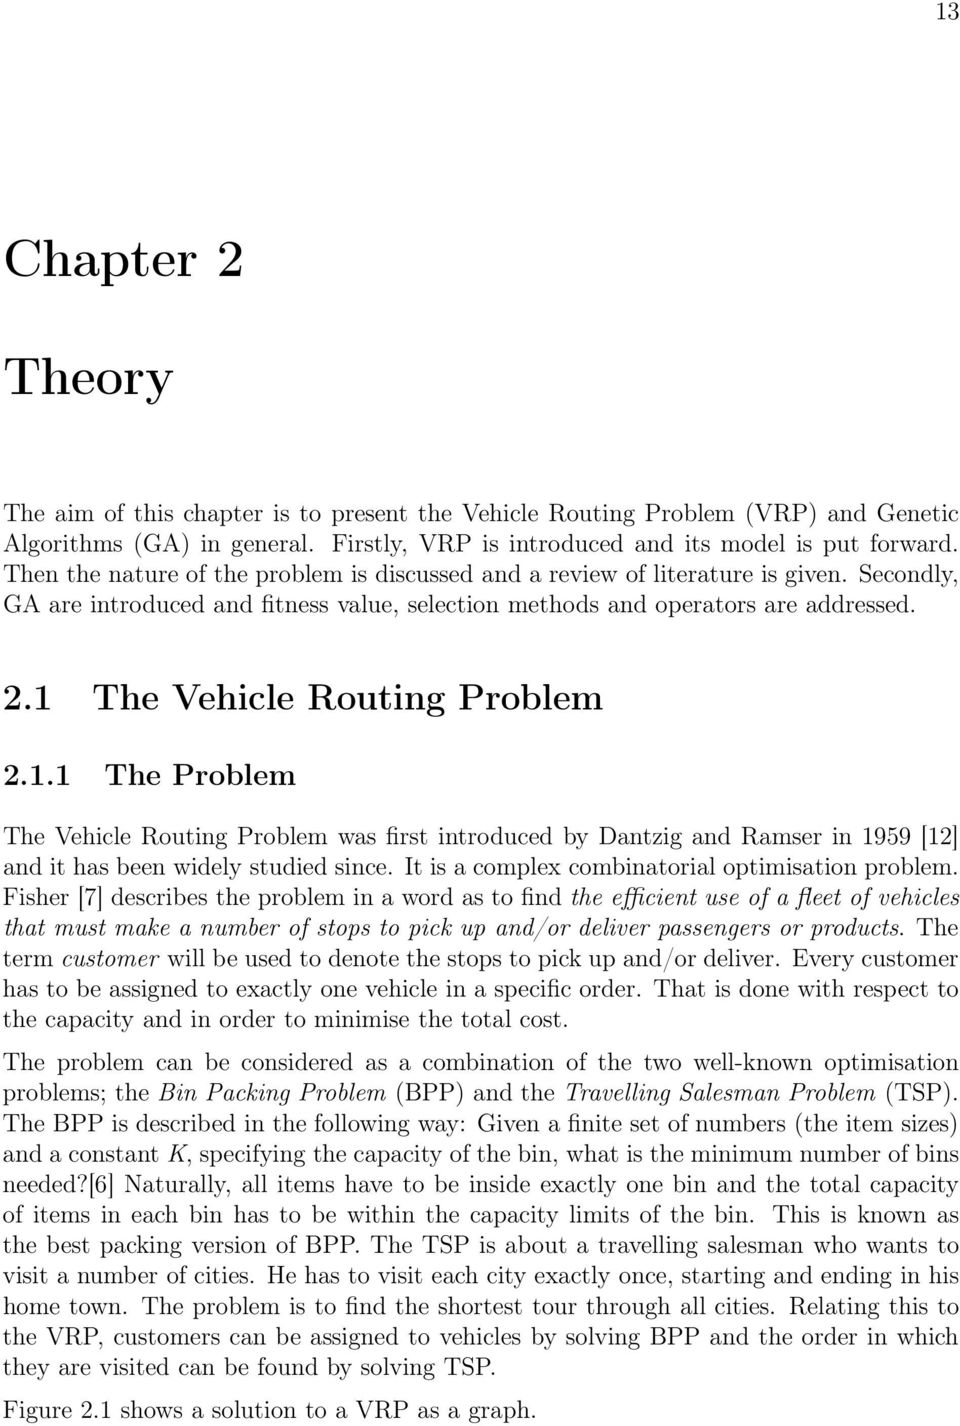 1 The Vehicle Routing Problem 2.1.1 The Problem The Vehicle Routing Problem was first introduced by Dantzig and Ramser in 1959 [12] and it has been widely studied since.